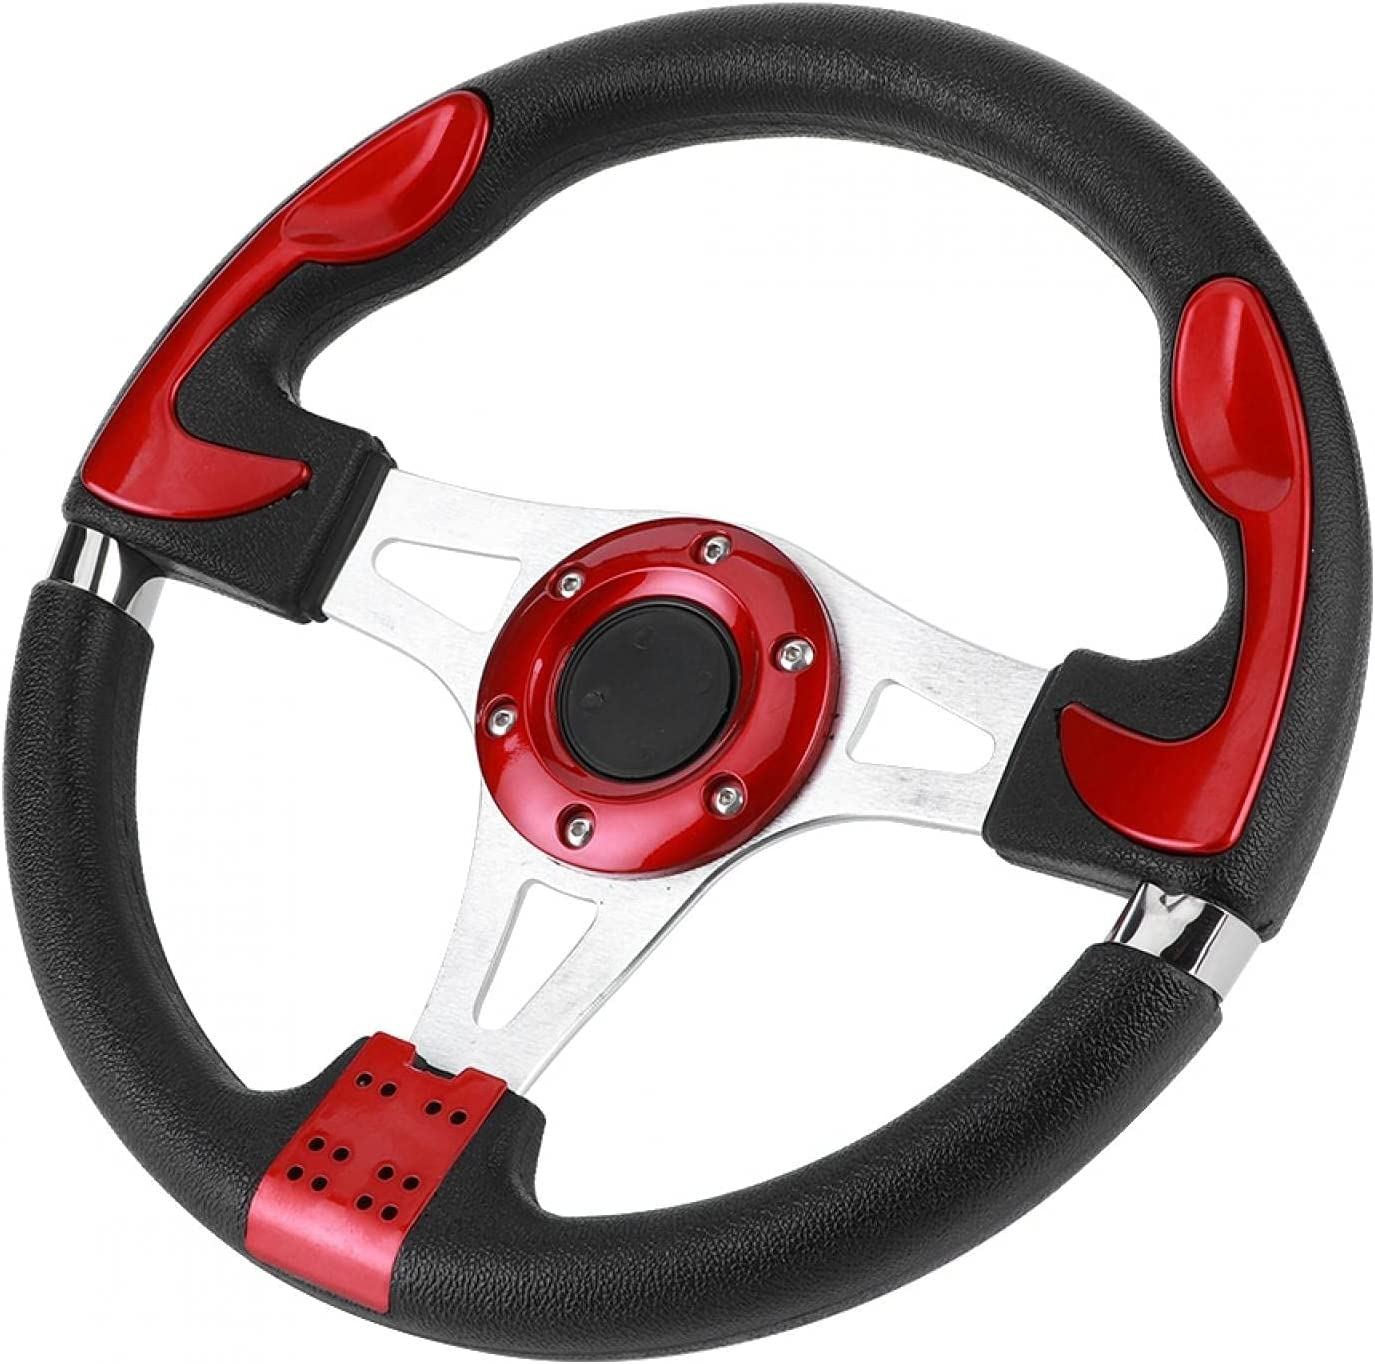 BOTEGRA Steering Wheel Replacem 12.5in Chicago Mall At the price Rustproof